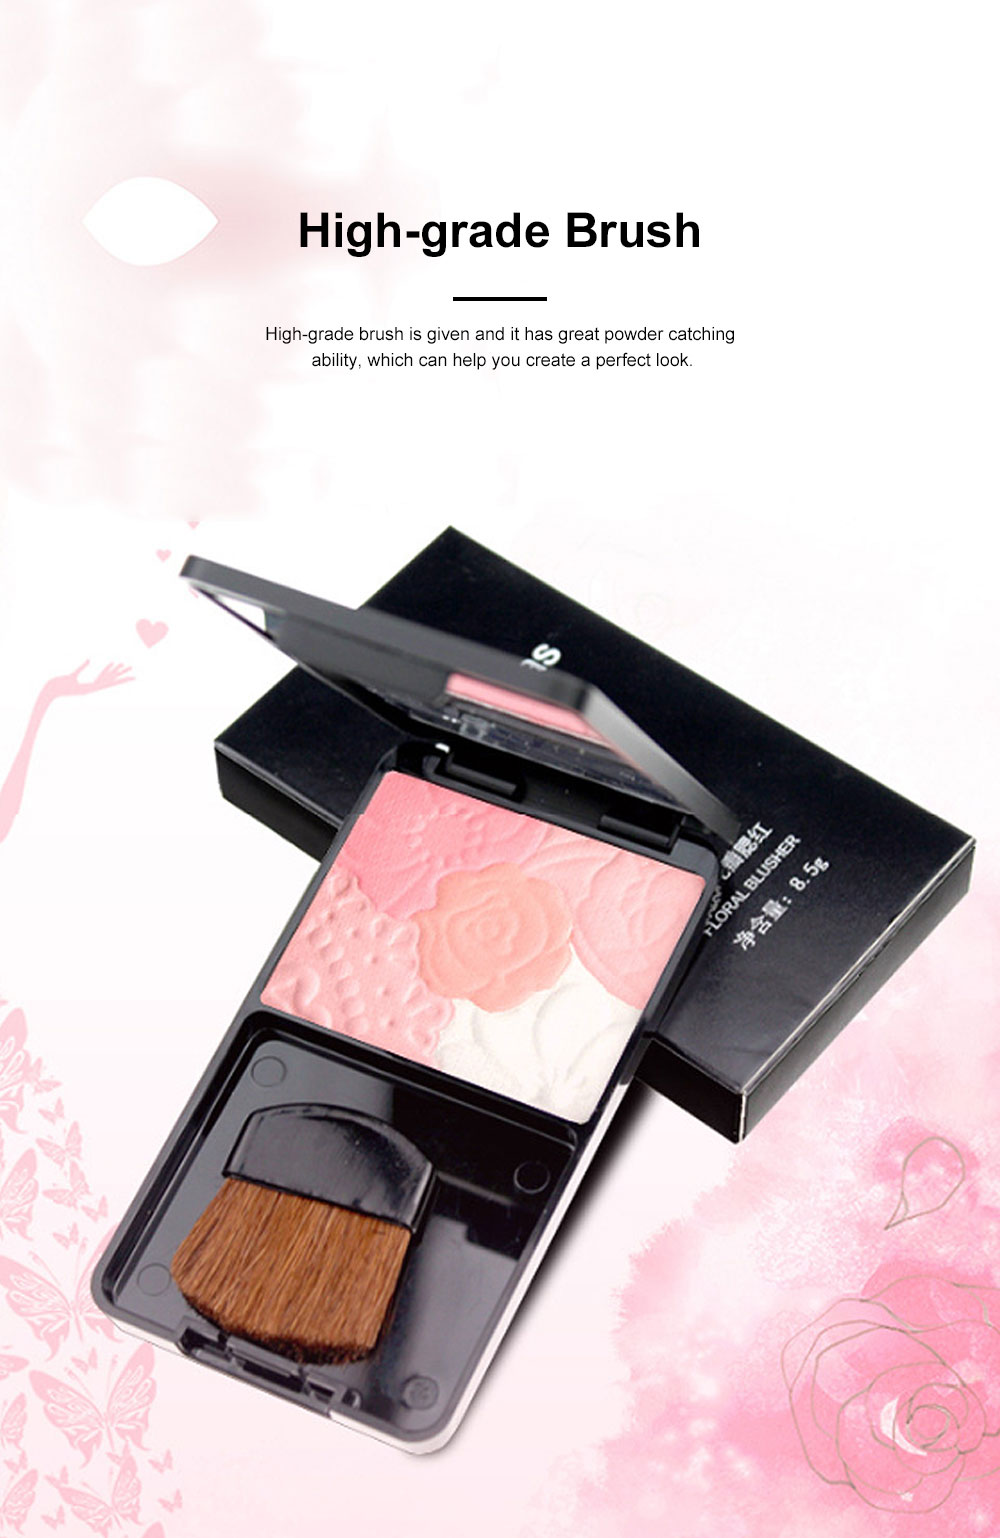 Exquisite Fancy Carved Flower Model Multicolor Blusher Shading Powder Blush with Cosmetic Brush Make-up Product 3